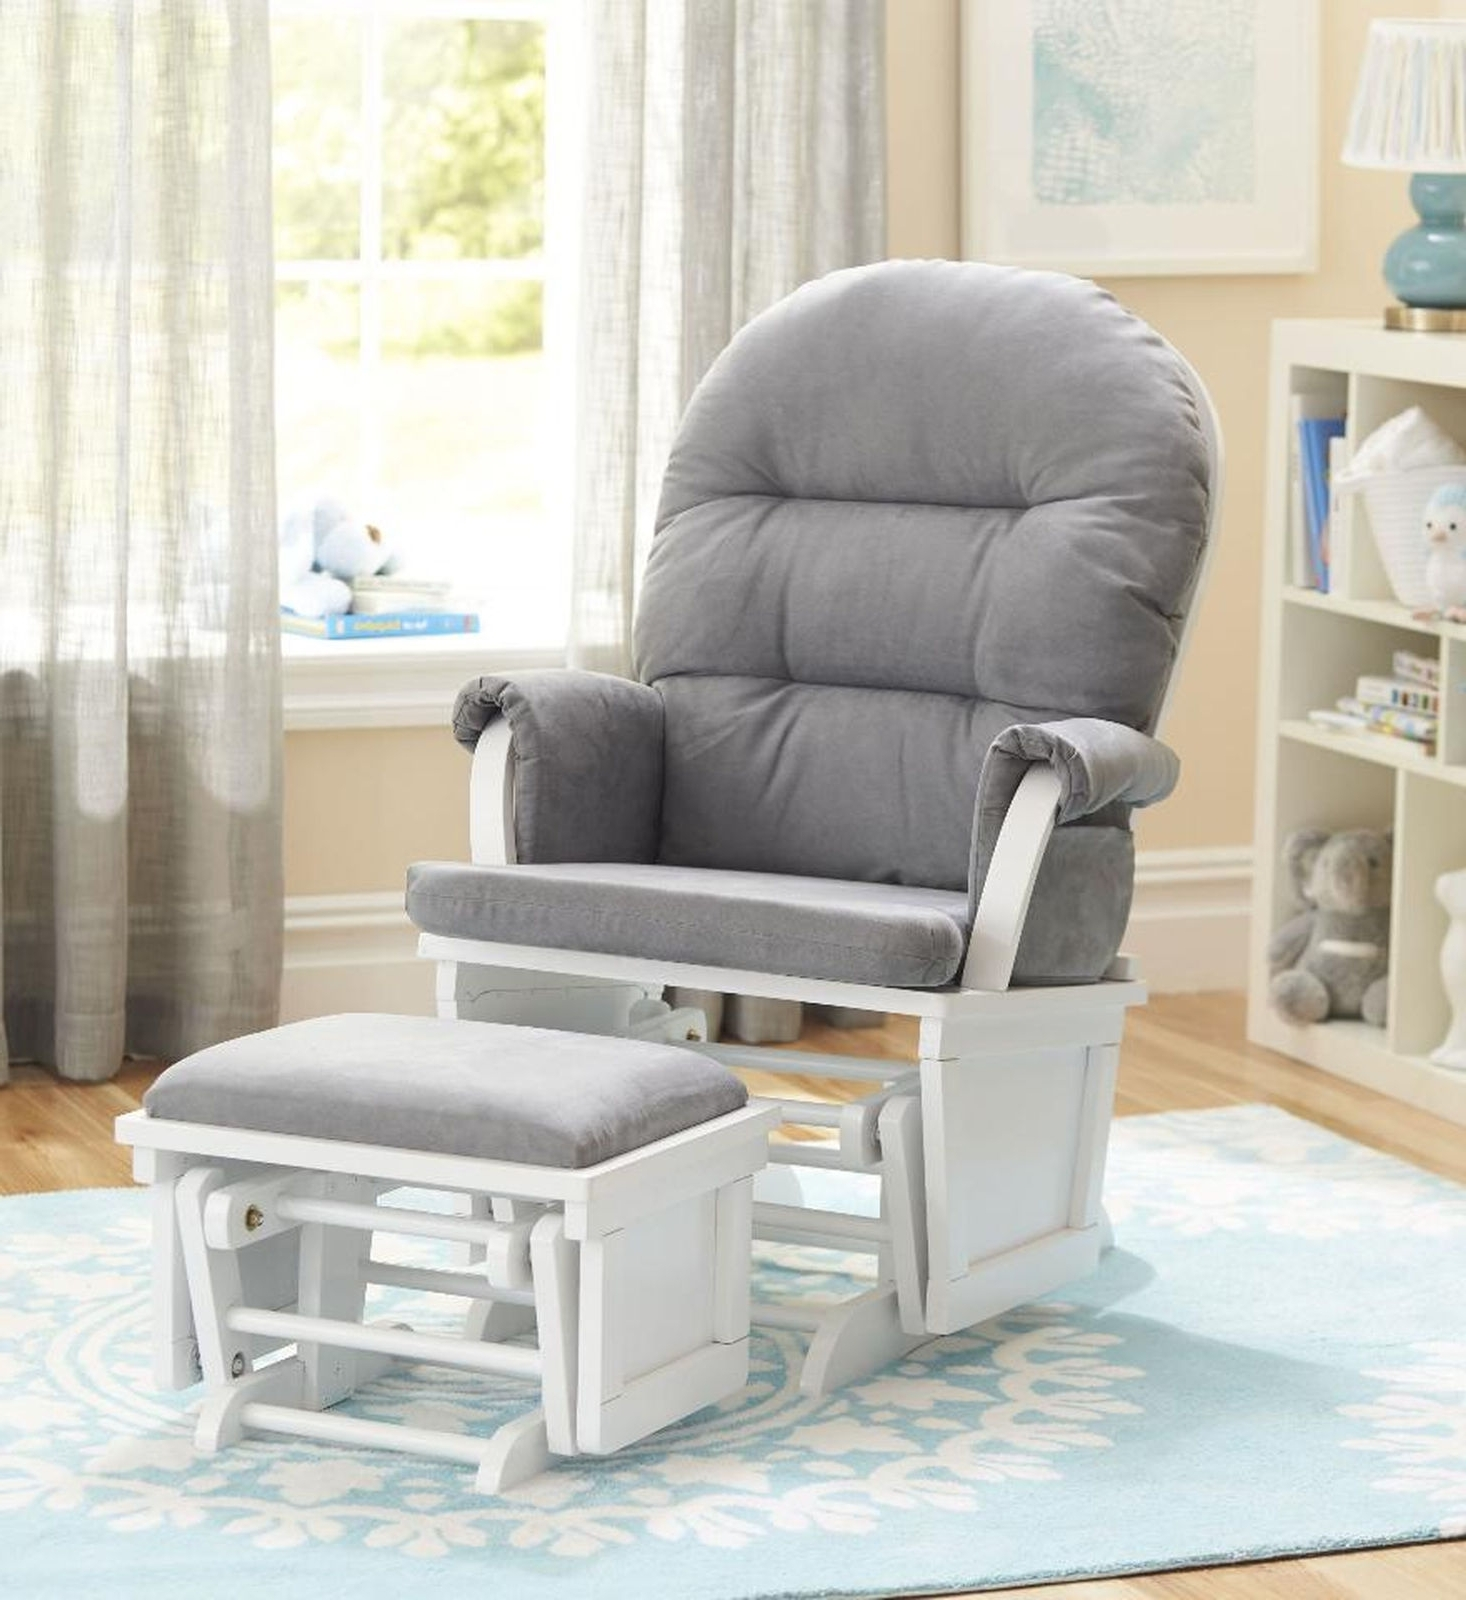 Living Room Furniture : Shermag Aiden Glider Ottoman Set White With Inside Widely Used Rocking Chairs For Nursery (View 3 of 20)